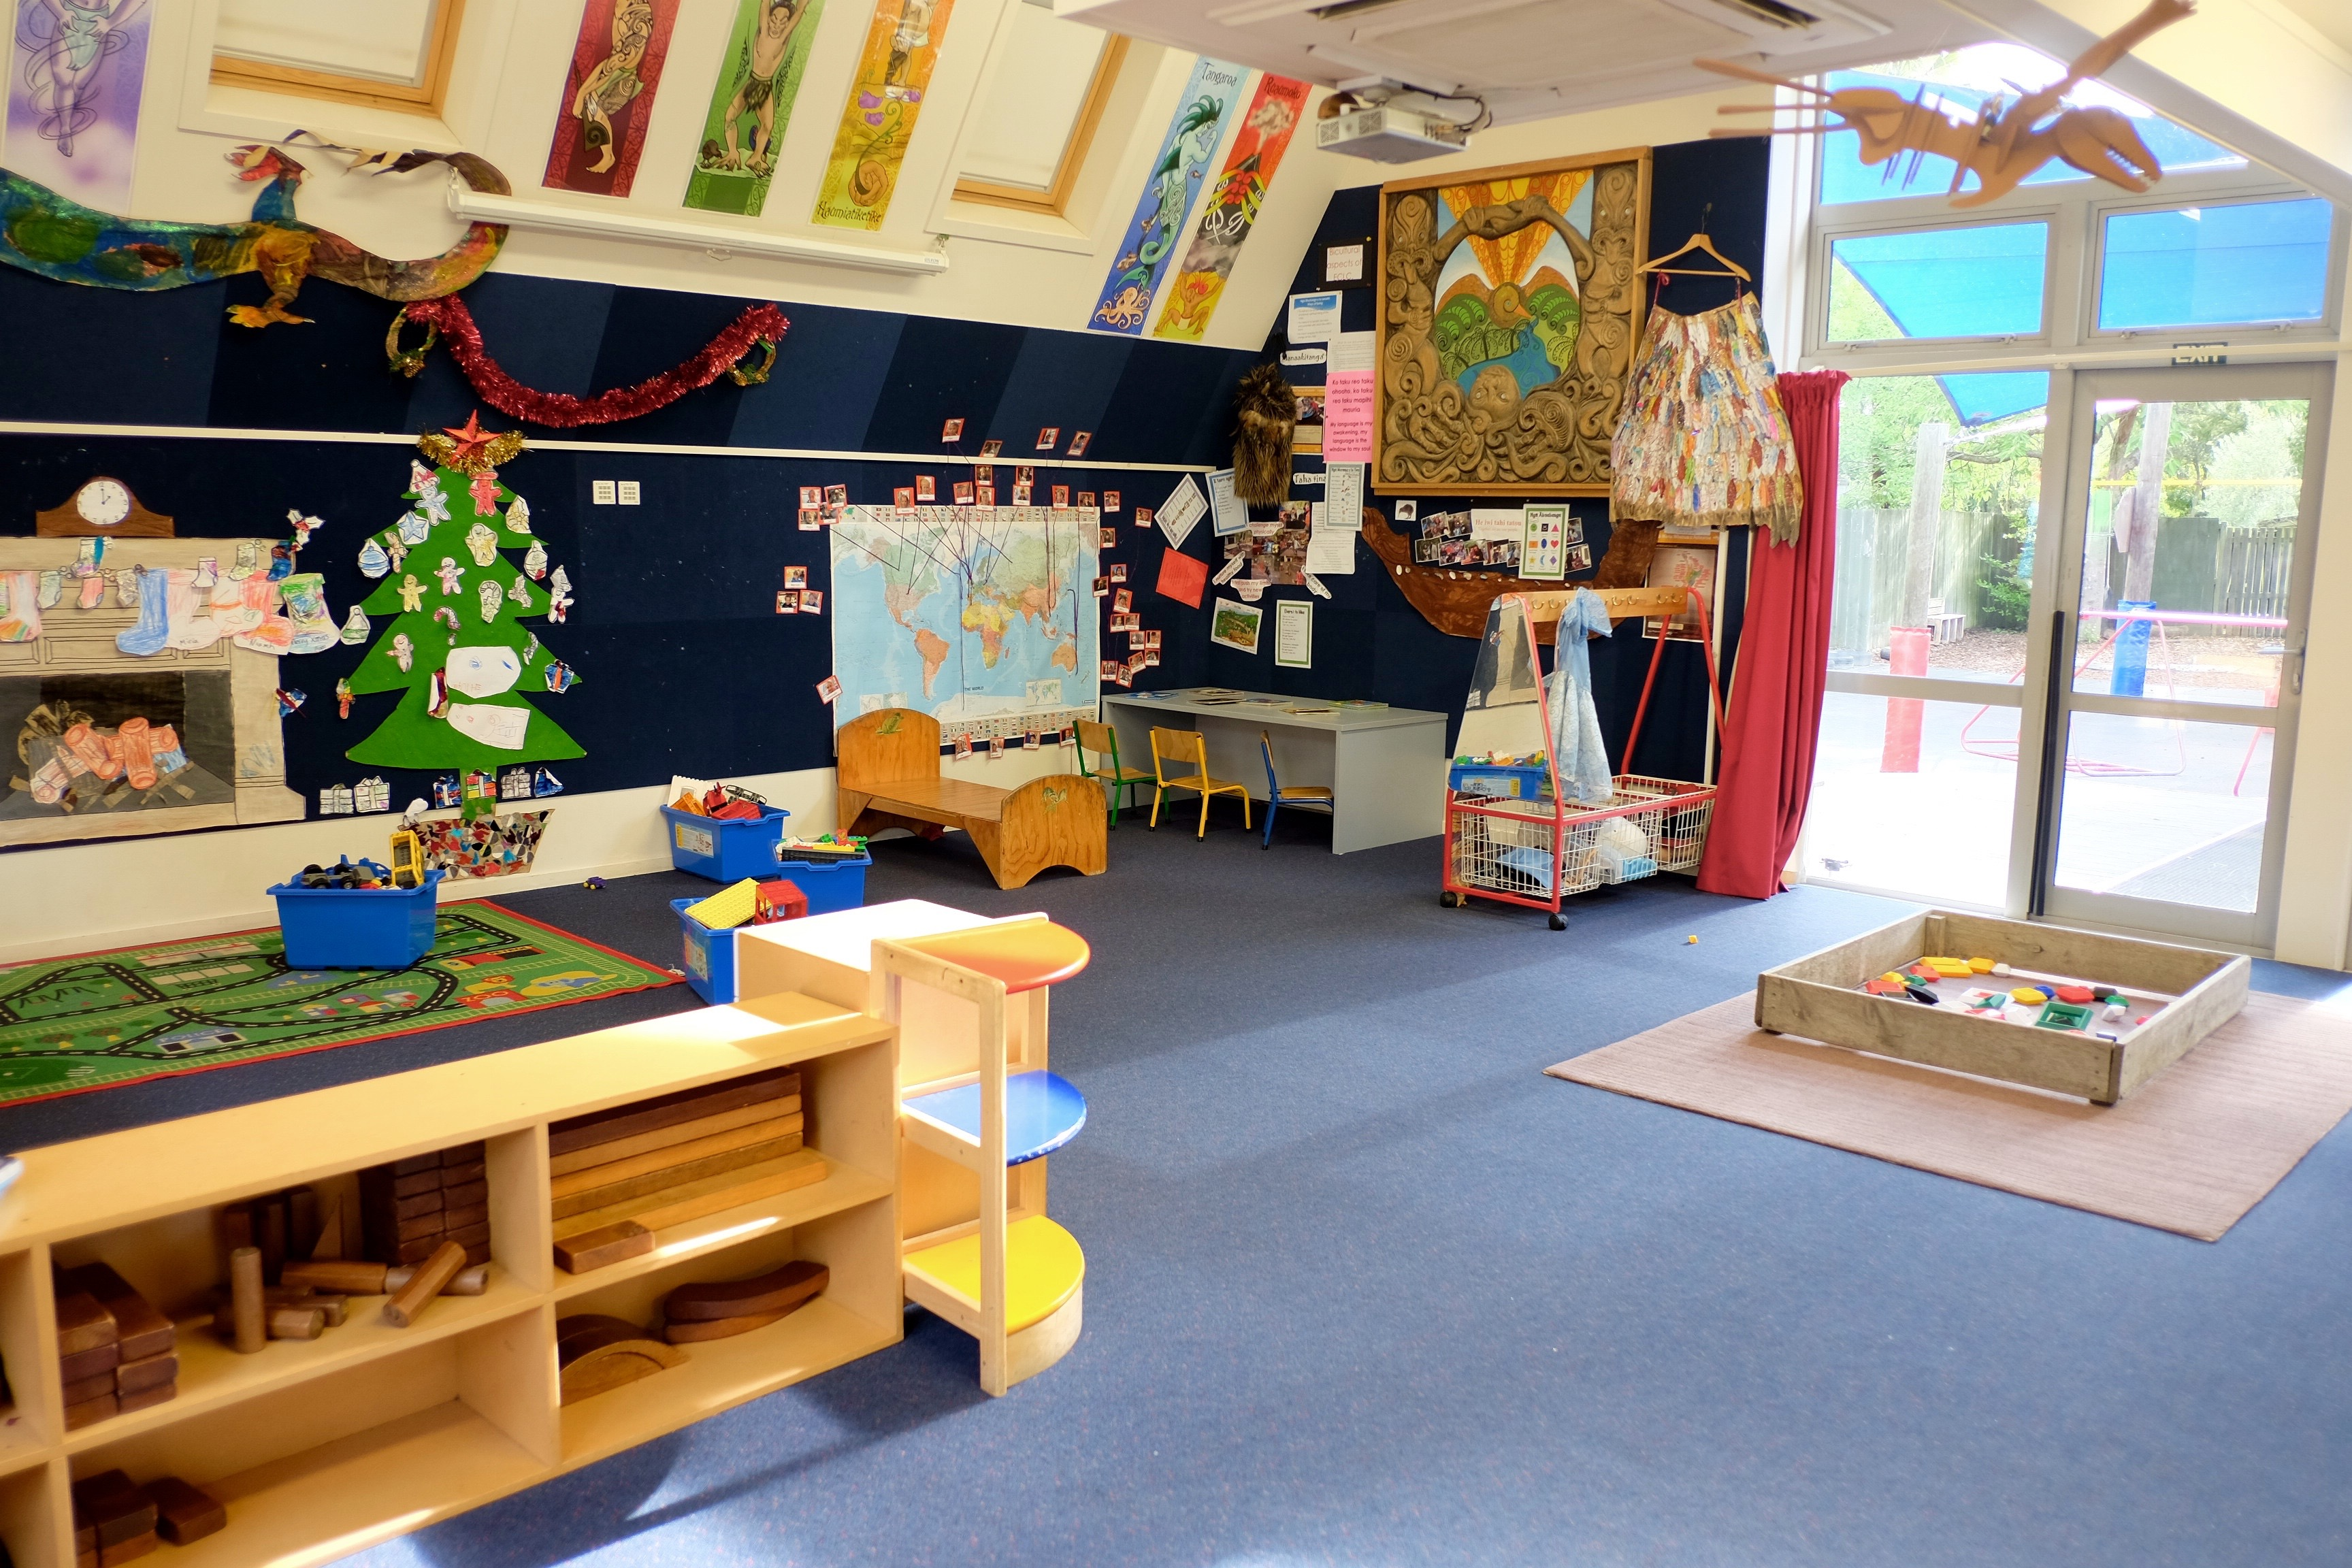 Childcare centre classroom decorations view